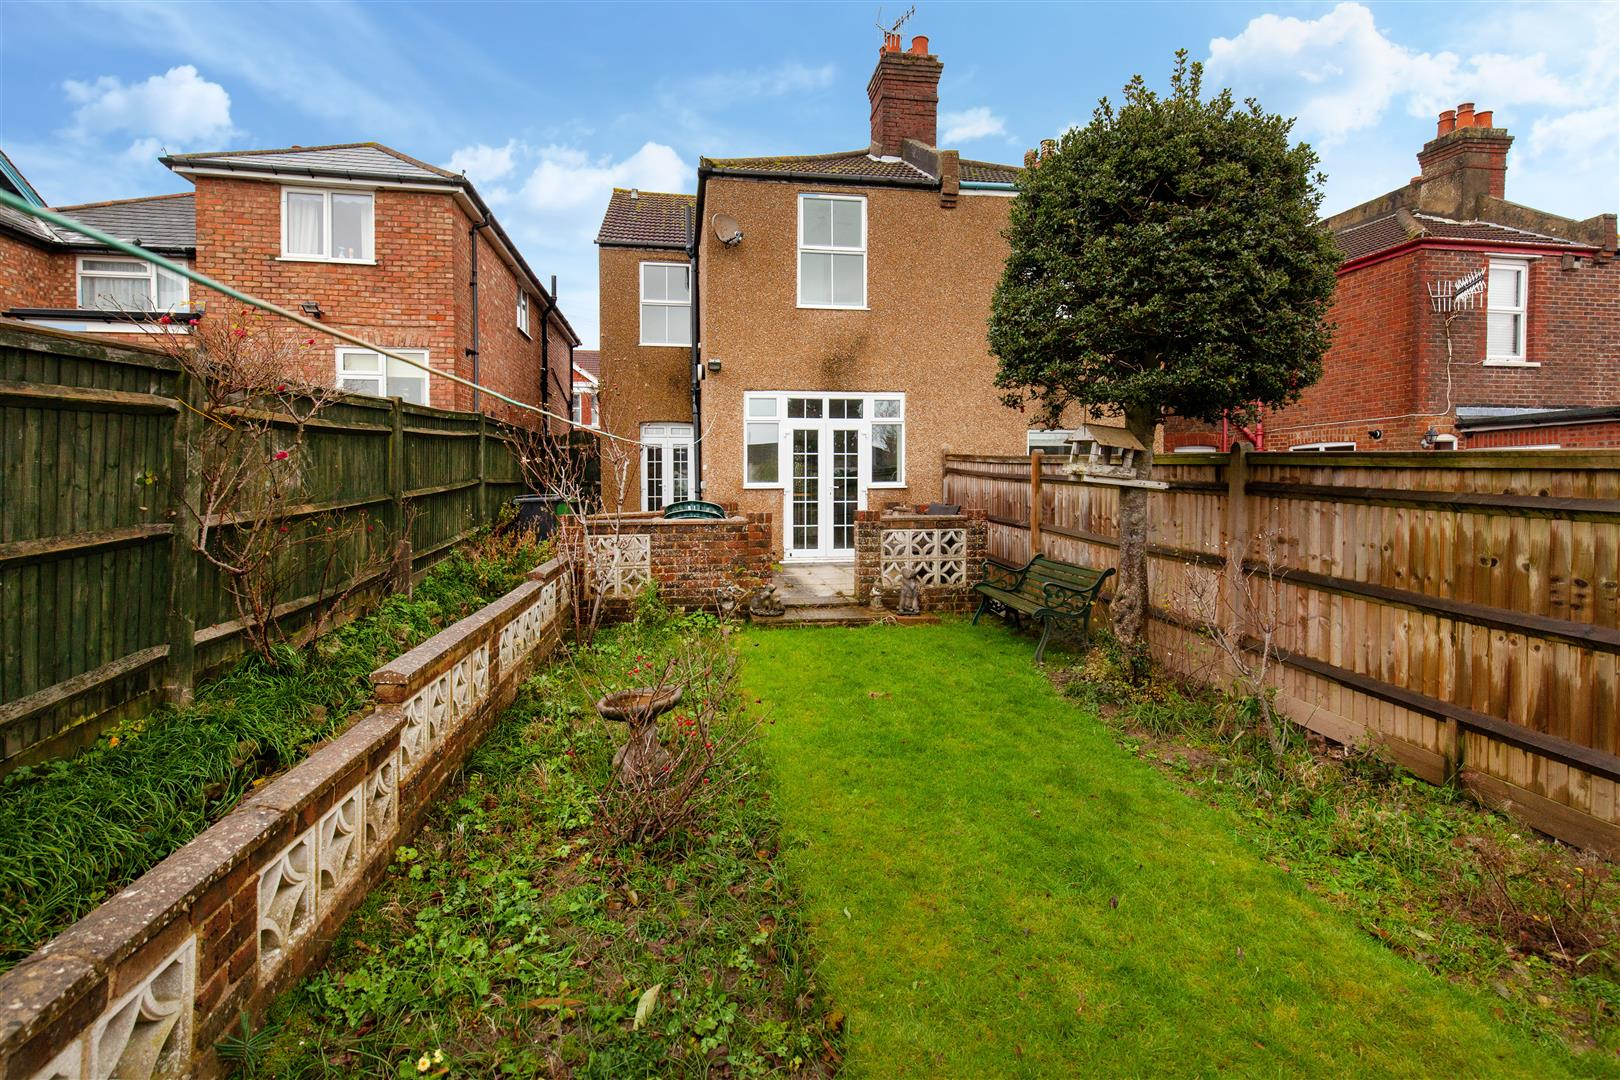 3 bed end-of-terrace-house for sale in Burry Road, St. Leonards-On-Sea  - Property Image 21